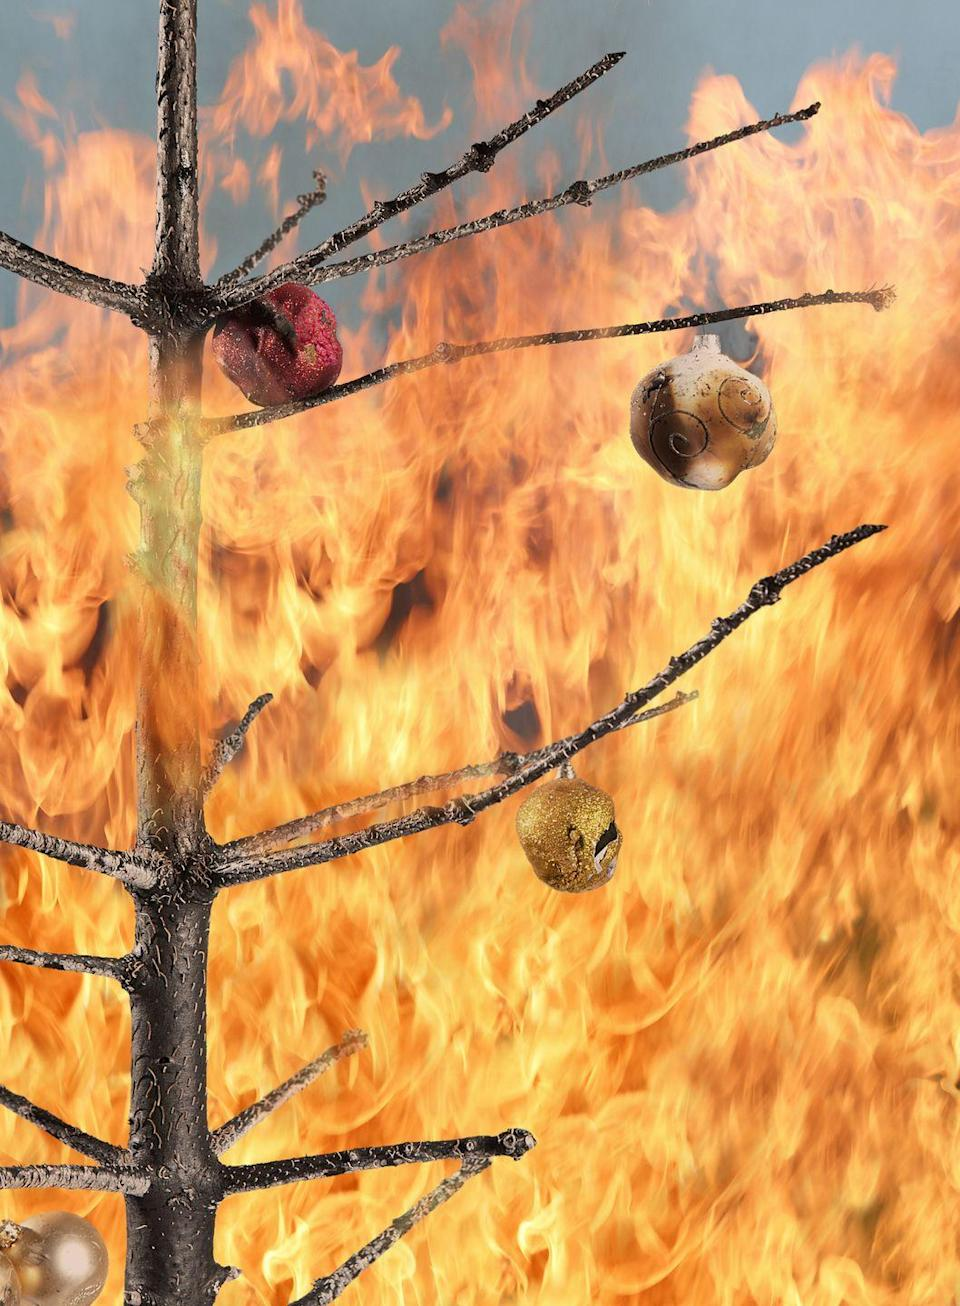 "<p>For the love of Christmas, don't forget to water your tree. Dried-out Christmas trees spark about a hundred fires each year, cause an average of 10 deaths, and result in $15.7 million in property damage, the <a href=""https://www.cpsc.gov/Newsroom/News-Releases/2018/Put-Safety-at-the-Top-of-Your-List-When-Decorating-this-Holiday-Season"" rel=""nofollow noopener"" target=""_blank"" data-ylk=""slk:Consumer Product Safety Commission reports"" class=""link rapid-noclick-resp"">Consumer Product Safety Commission reports</a>. Not only will an errant spark ruin your holiday, it can put both you and responding firefighters in danger. </p><p><strong>RELATED:</strong> <a href=""https://www.goodhousekeeping.com/holidays/christmas-ideas/g1863/fake-christmas-trees/"" rel=""nofollow noopener"" target=""_blank"" data-ylk=""slk:Artificial Christmas trees that look real"" class=""link rapid-noclick-resp"">Artificial Christmas trees that look real</a></p>"